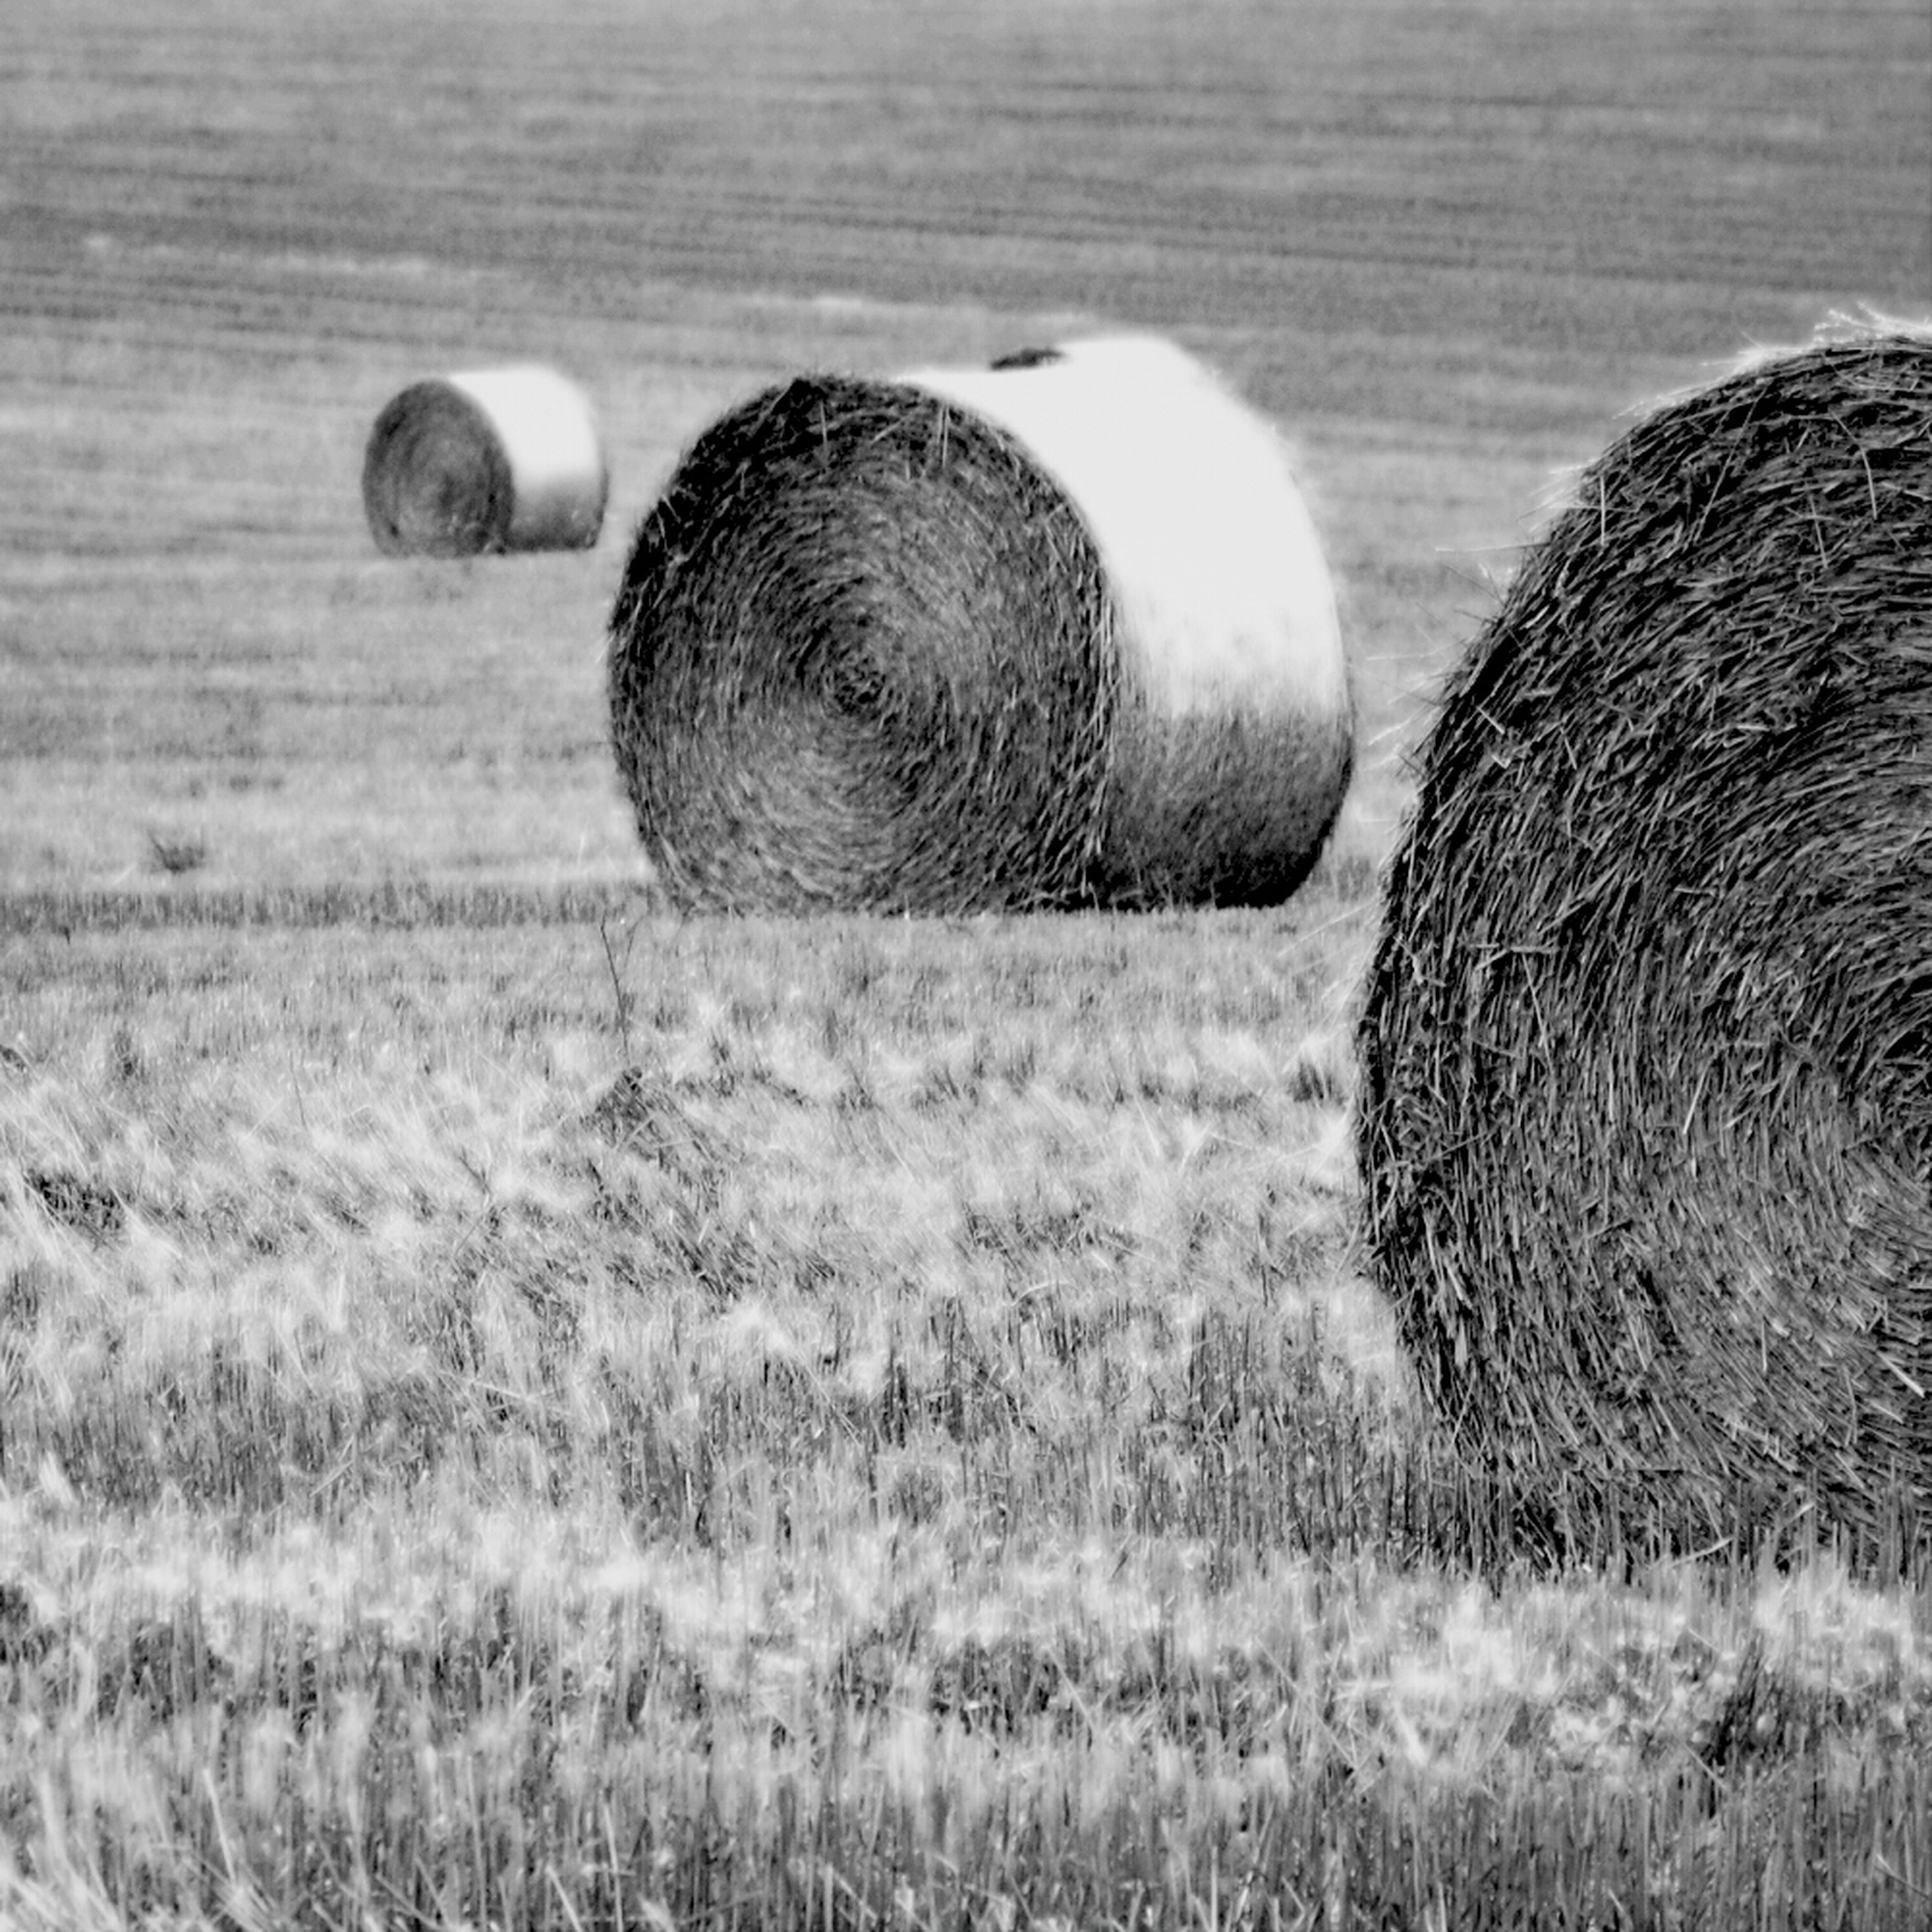 field, grass, rural scene, hay, bale, agriculture, farm, landscape, harvesting, rolled up, no people, circle, straw, outdoors, nature, grassy, tranquil scene, close-up, day, tranquility